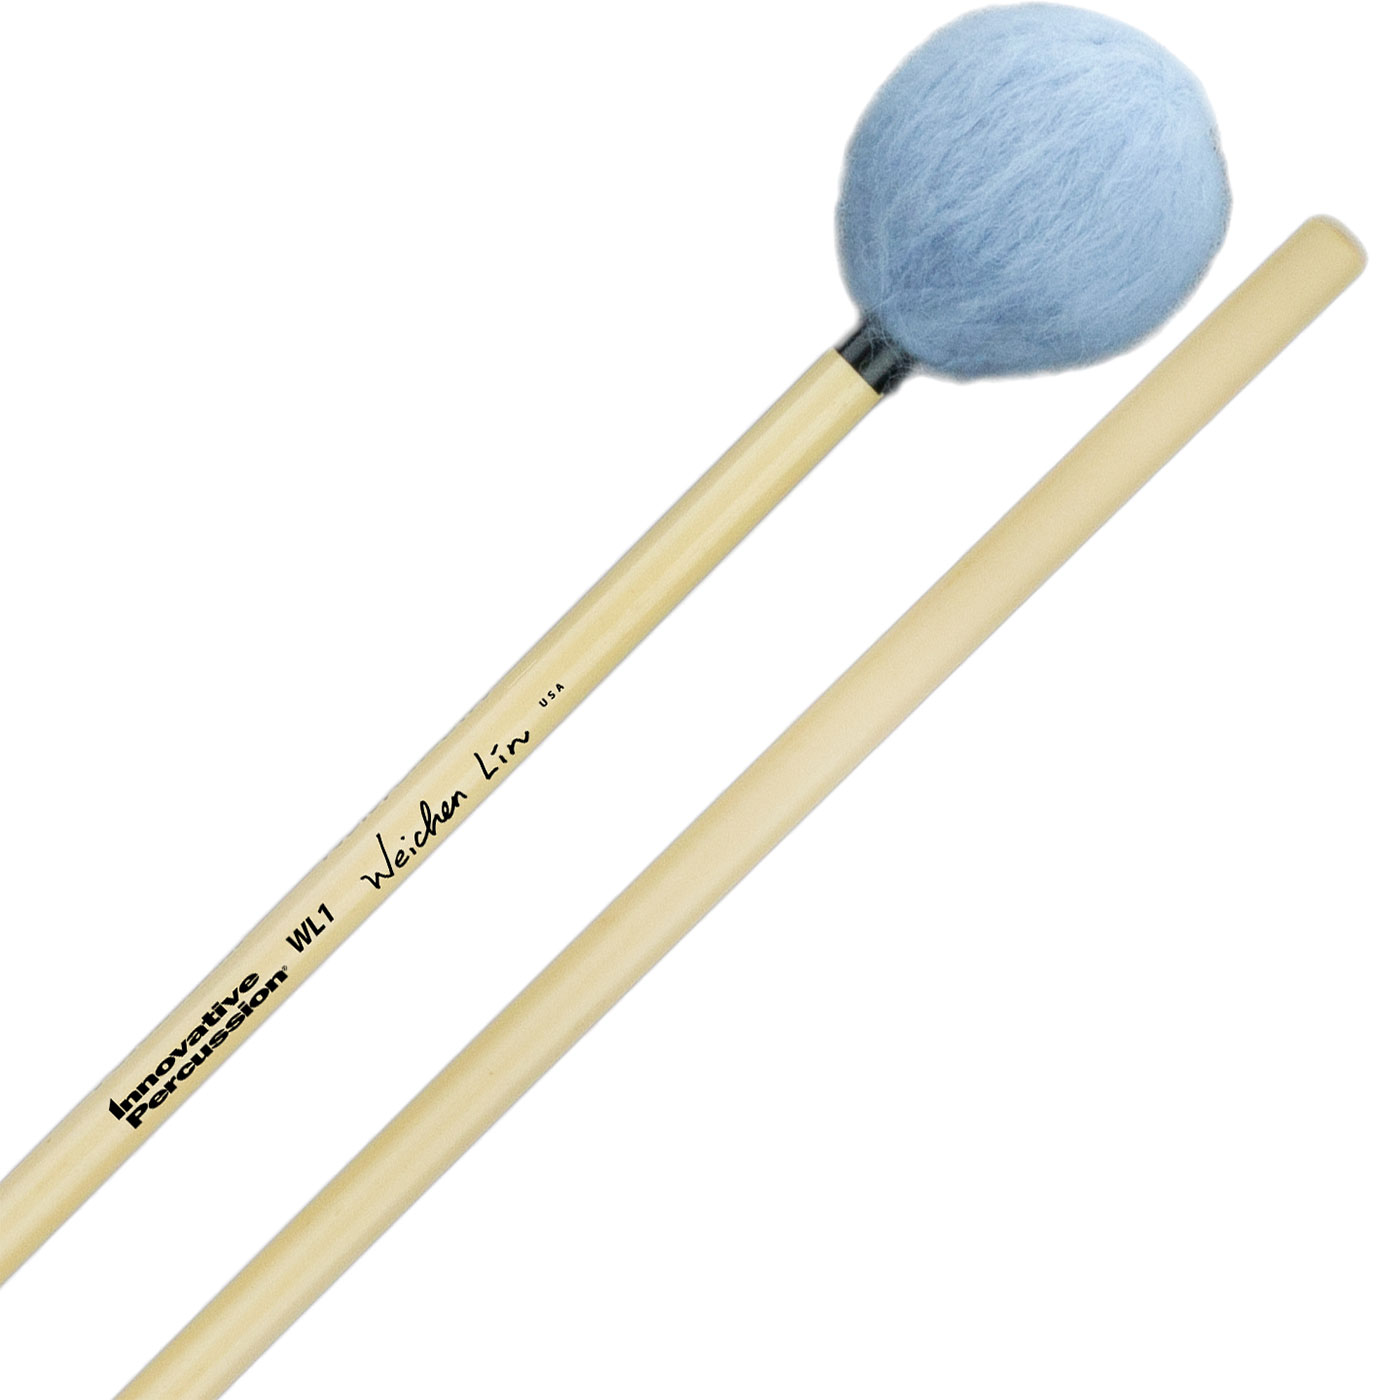 Innovative Percussion Wei-Chen Lin Signature Bass Marimba Mallets with Rattan Handles